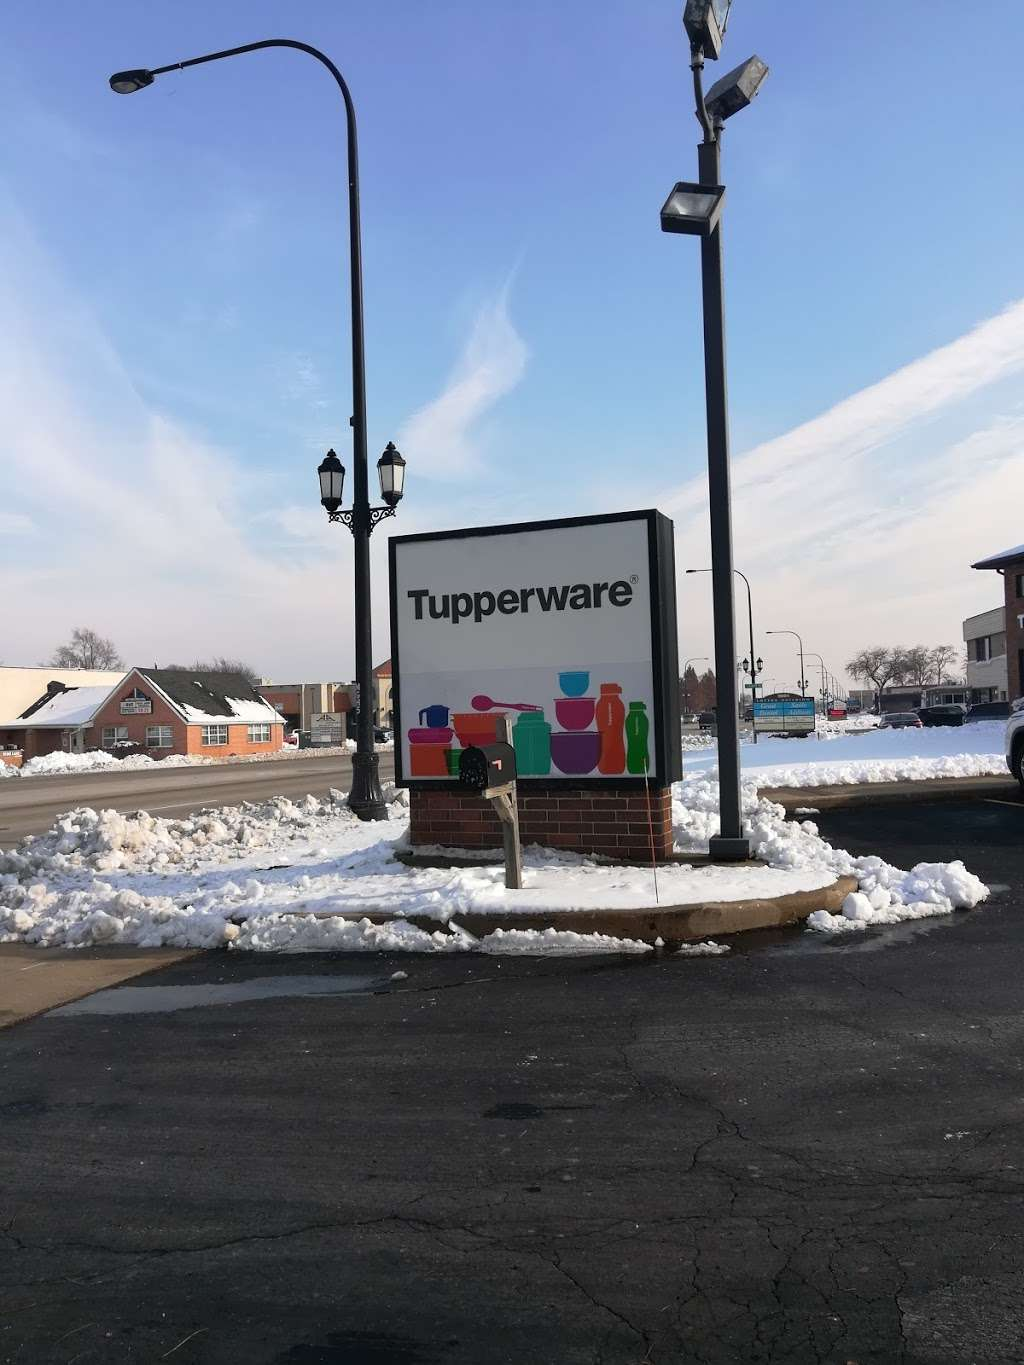 Tupperware Studio - home goods store  | Photo 3 of 3 | Address: Addison, IL 60101, USA